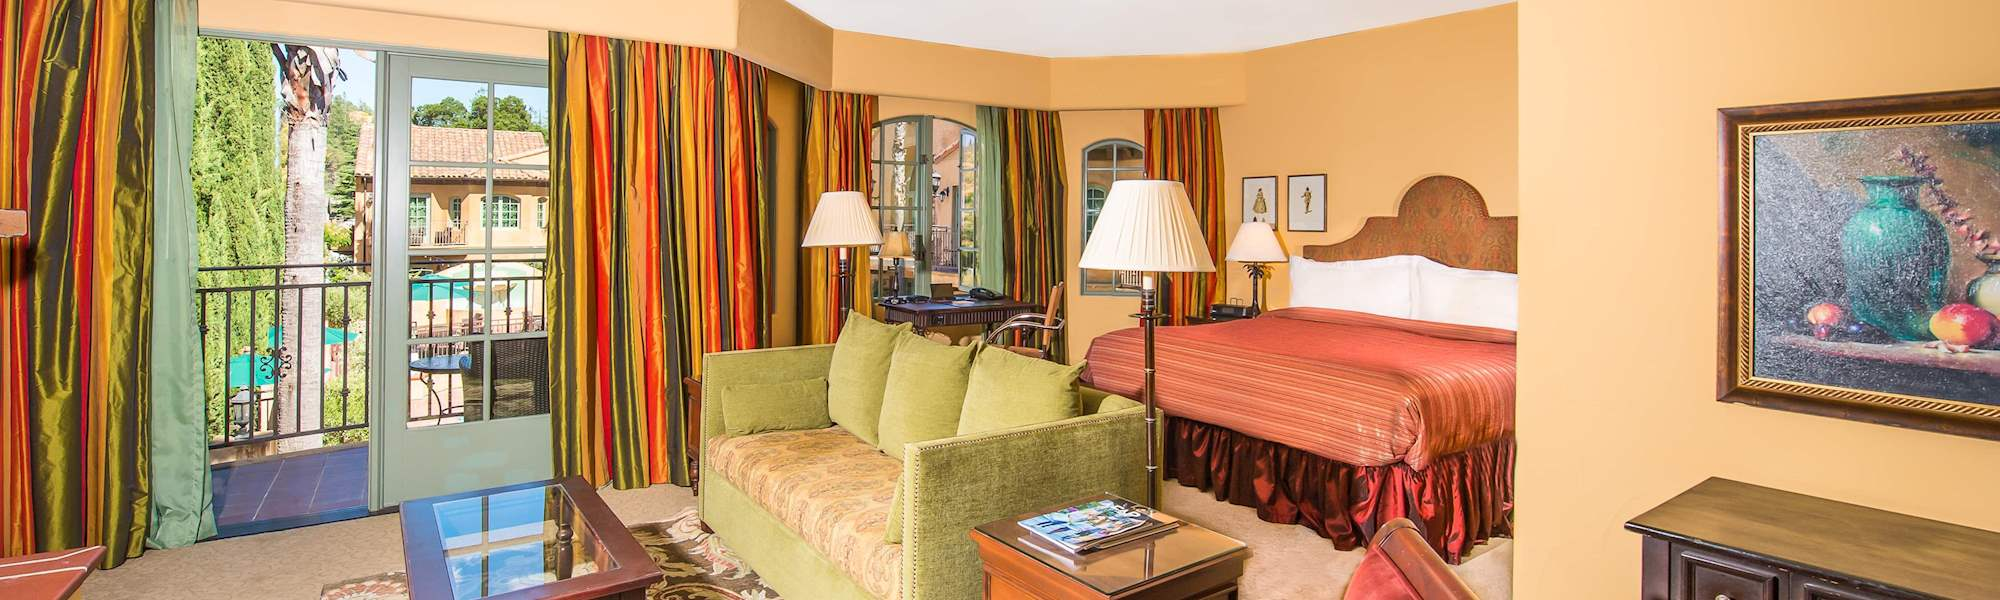 Rooms at Hotel Los Gatos